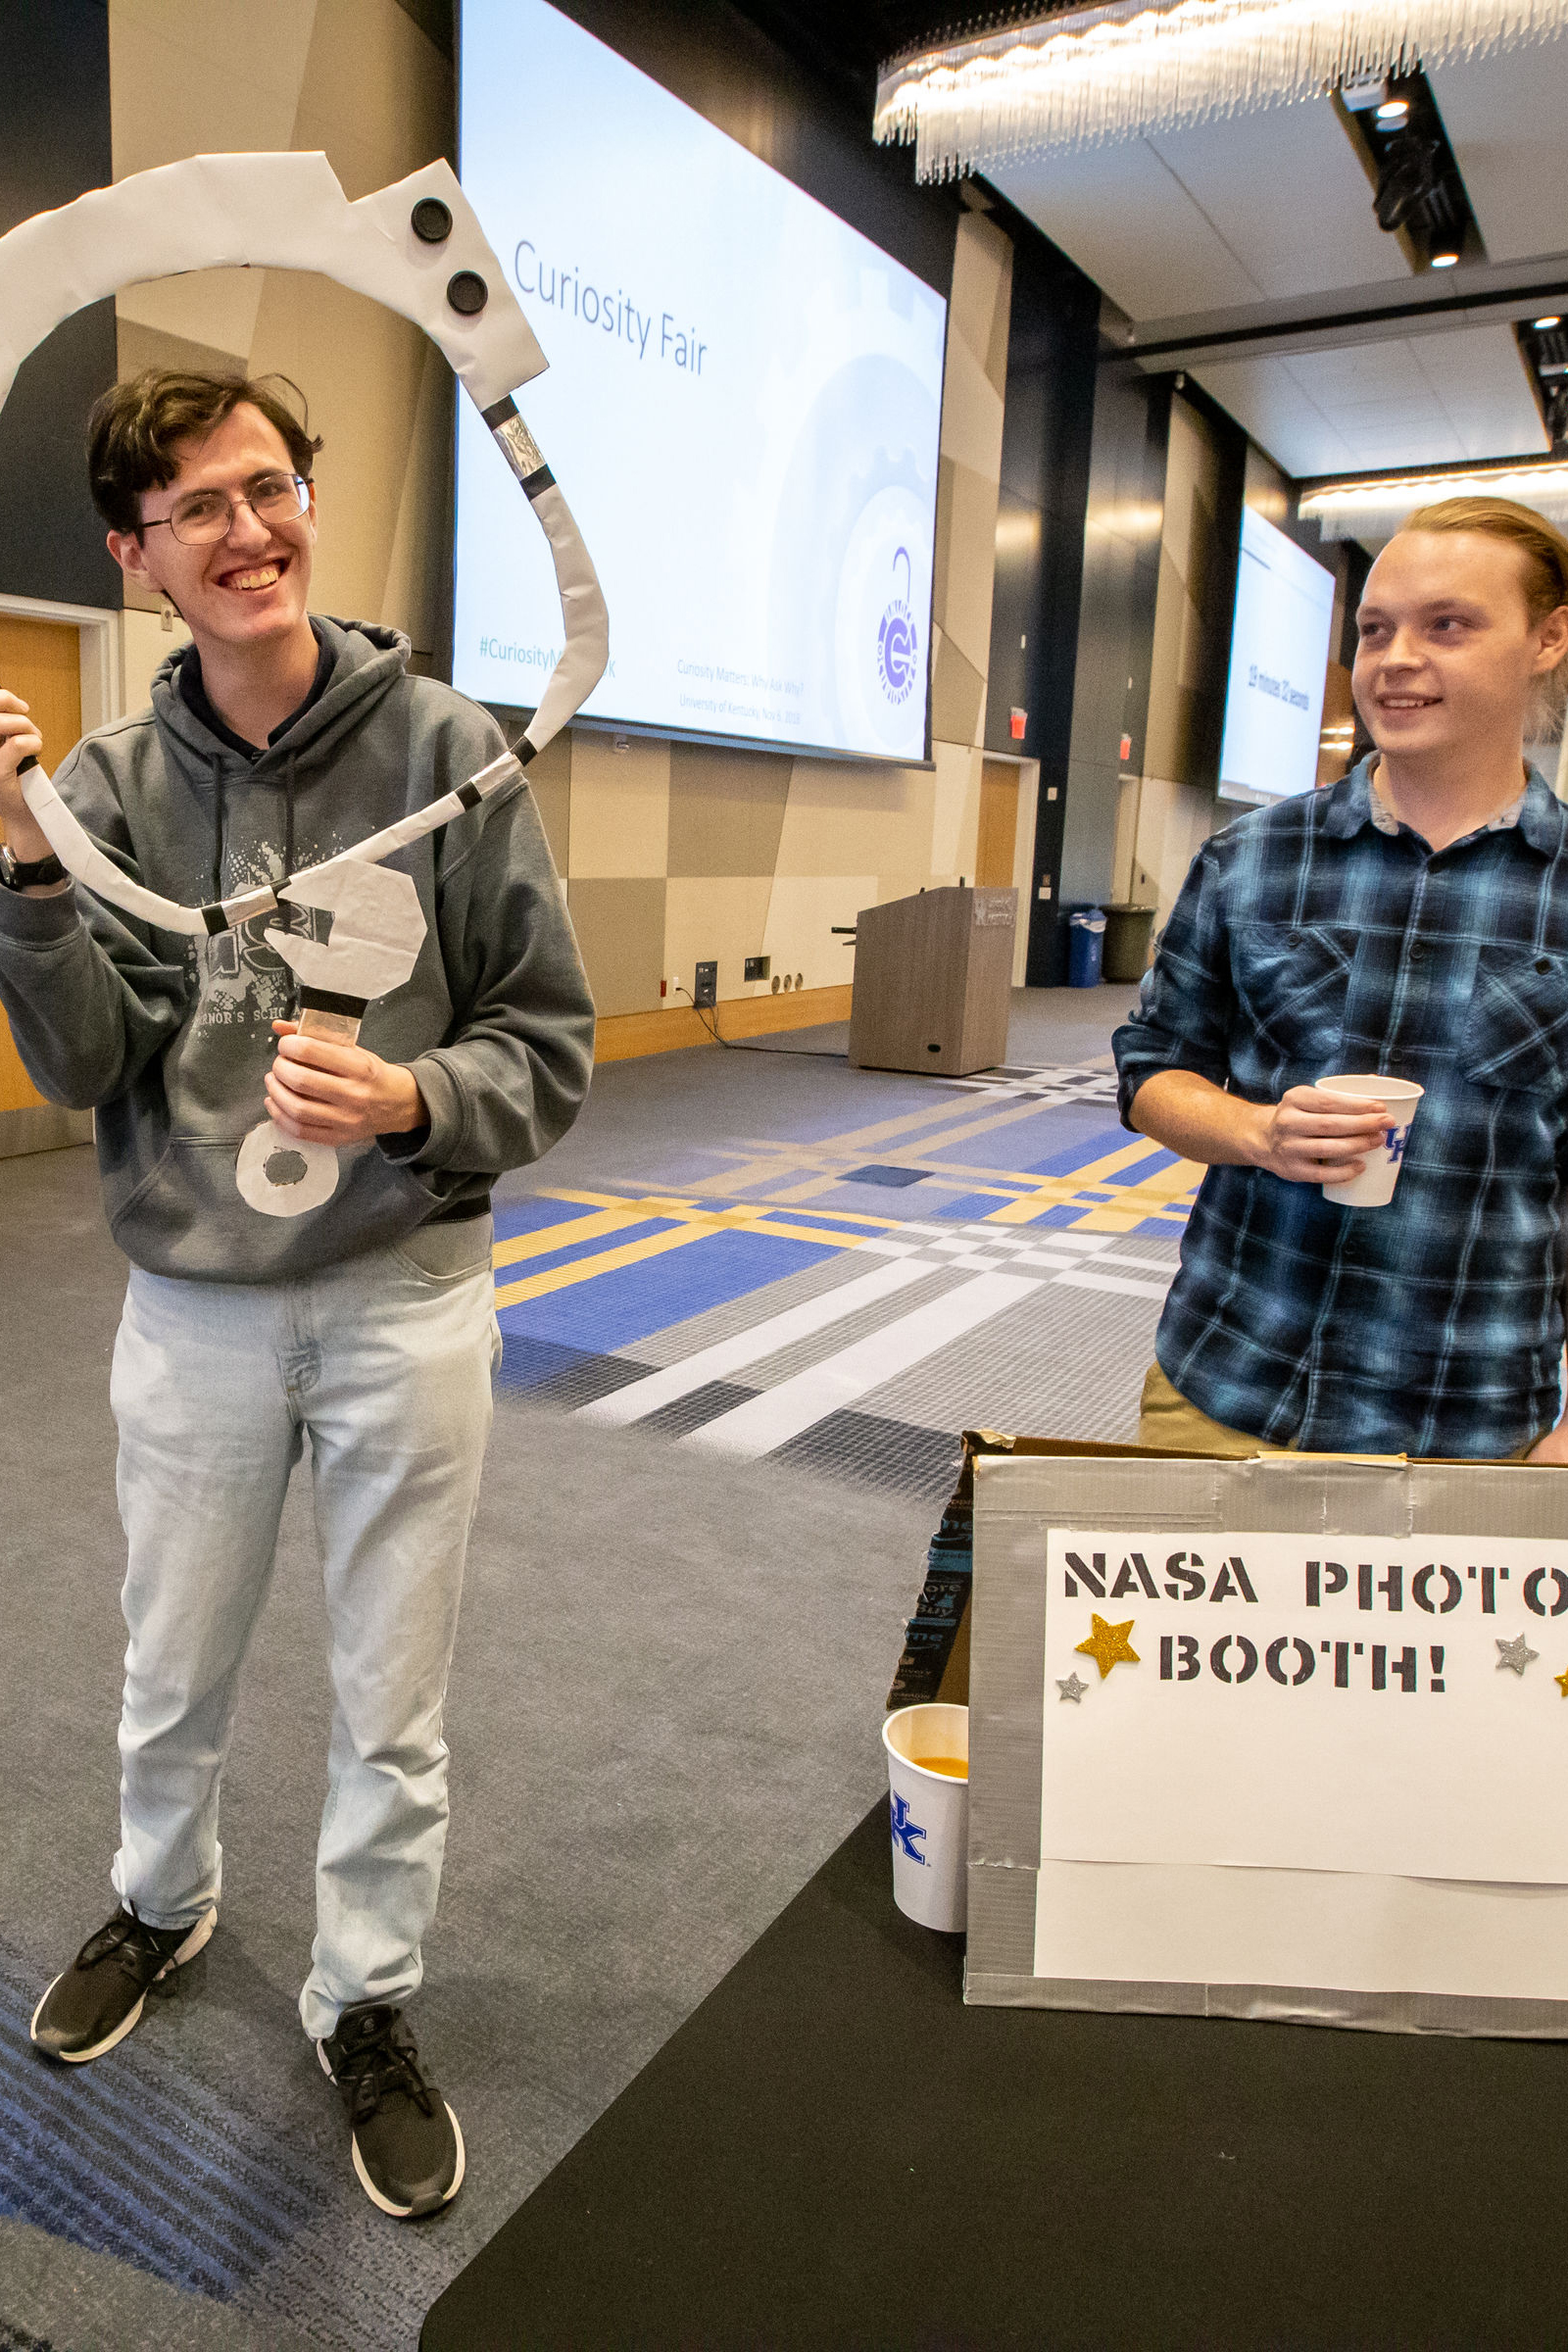 NASA Photo Booth